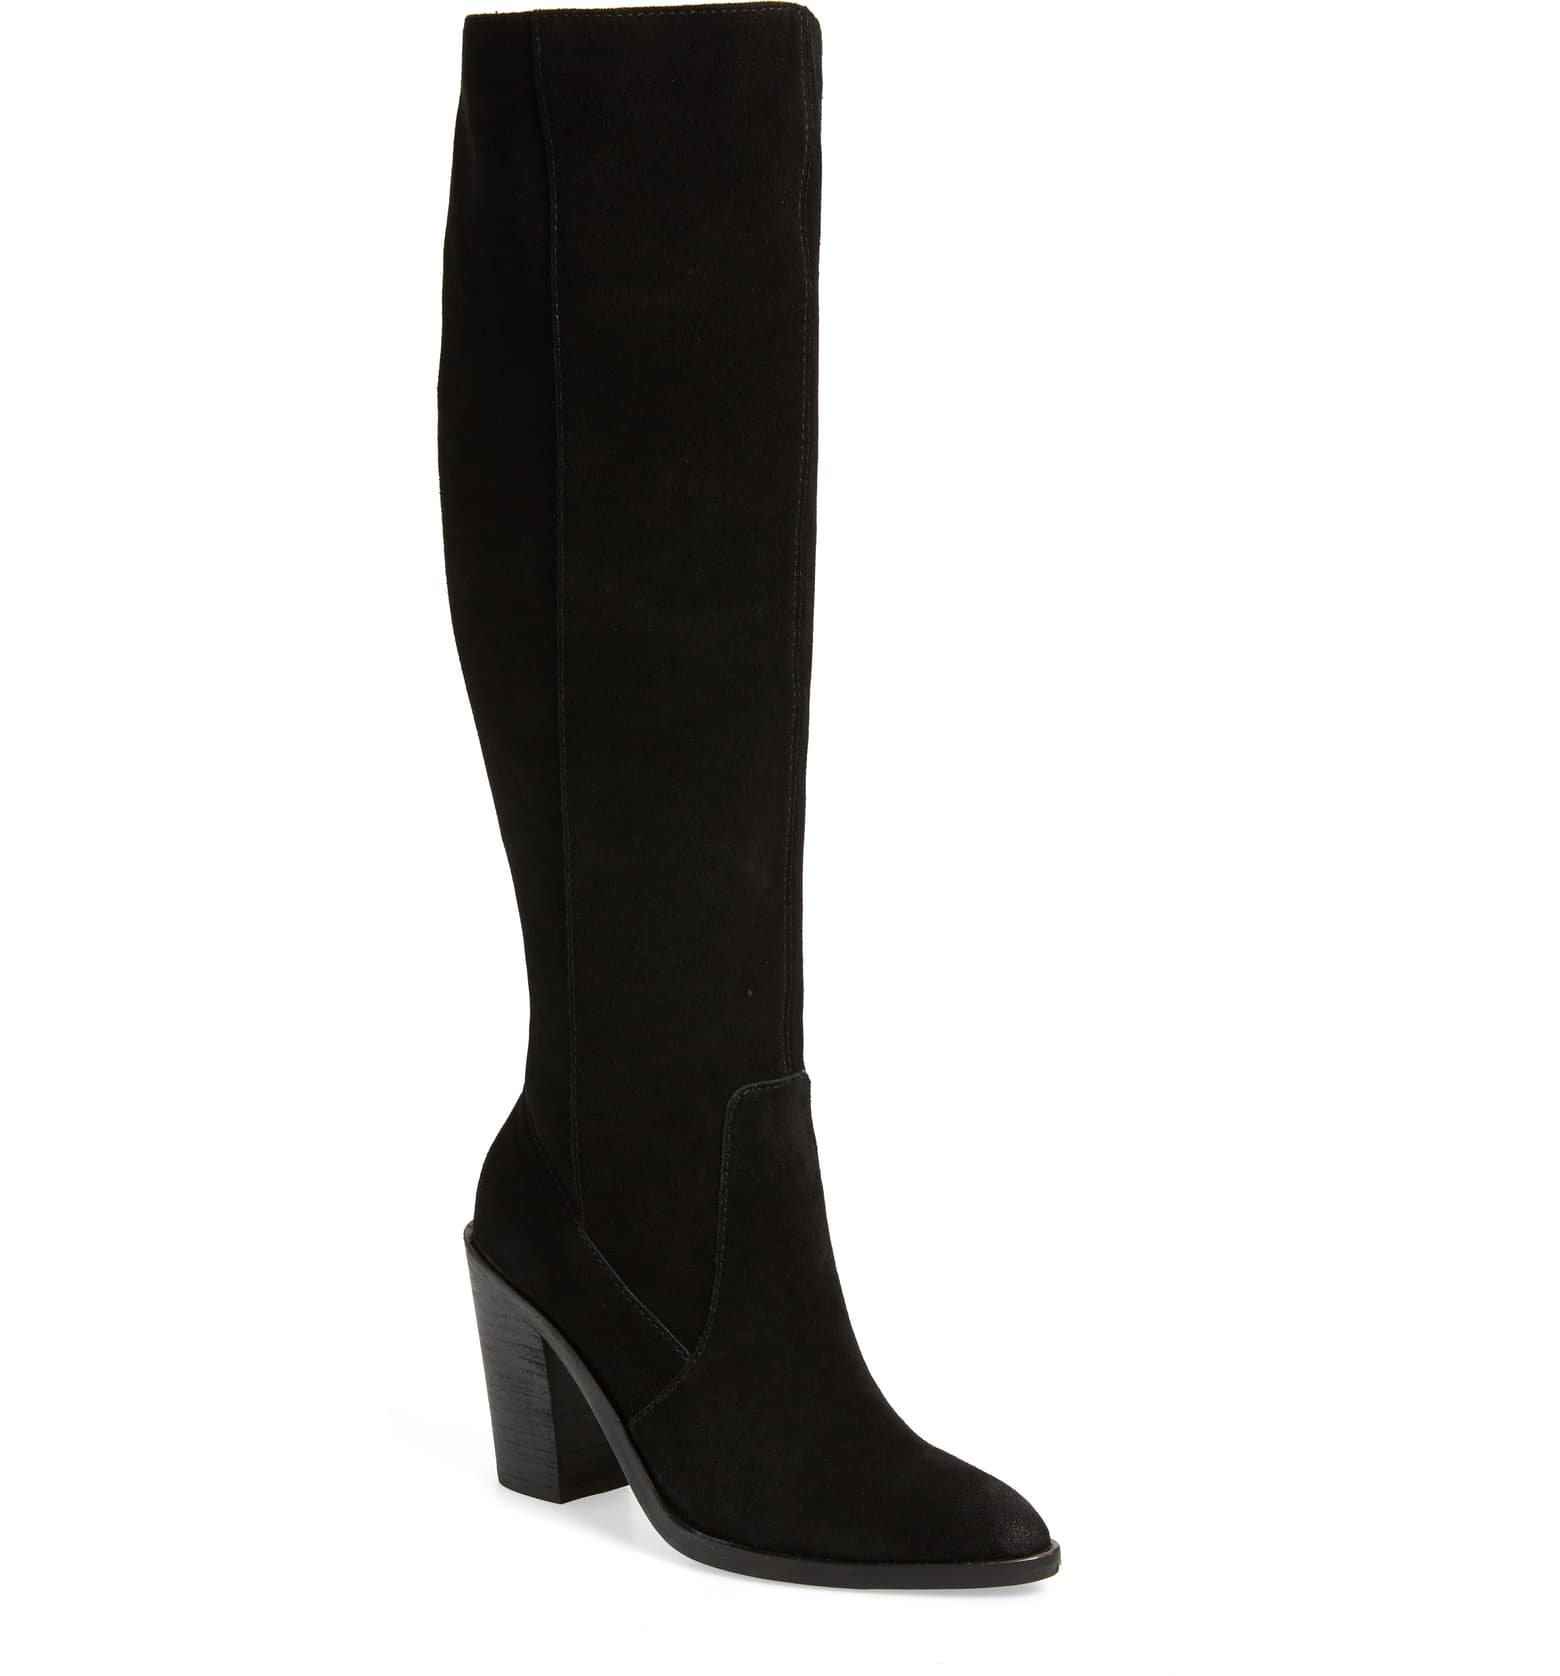 Over the knee and knee high boots are on trend for fall 2019--here are a few of the most wanted.